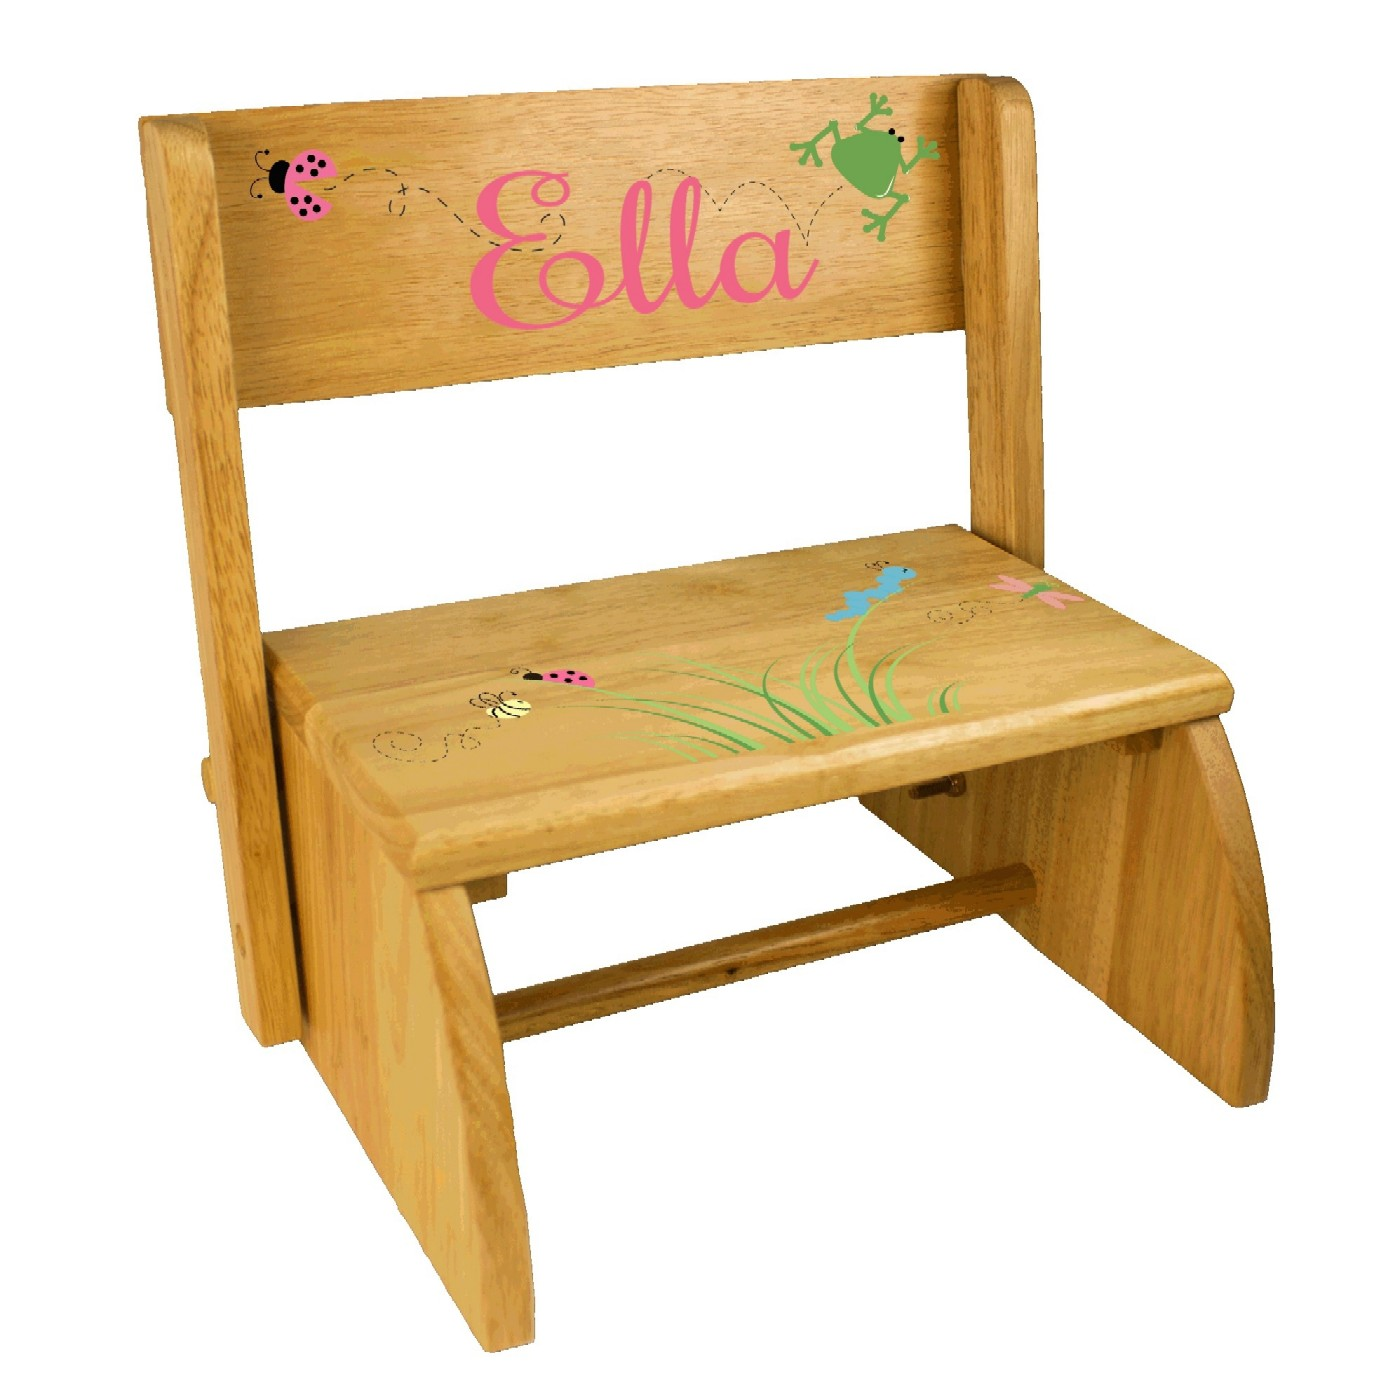 Personalized Kids Step Stools | SimplyUniqueBabyGifts.com | Free Shipping  sc 1 st  Simply Unique Baby Gifts : wooden kids step stool - islam-shia.org